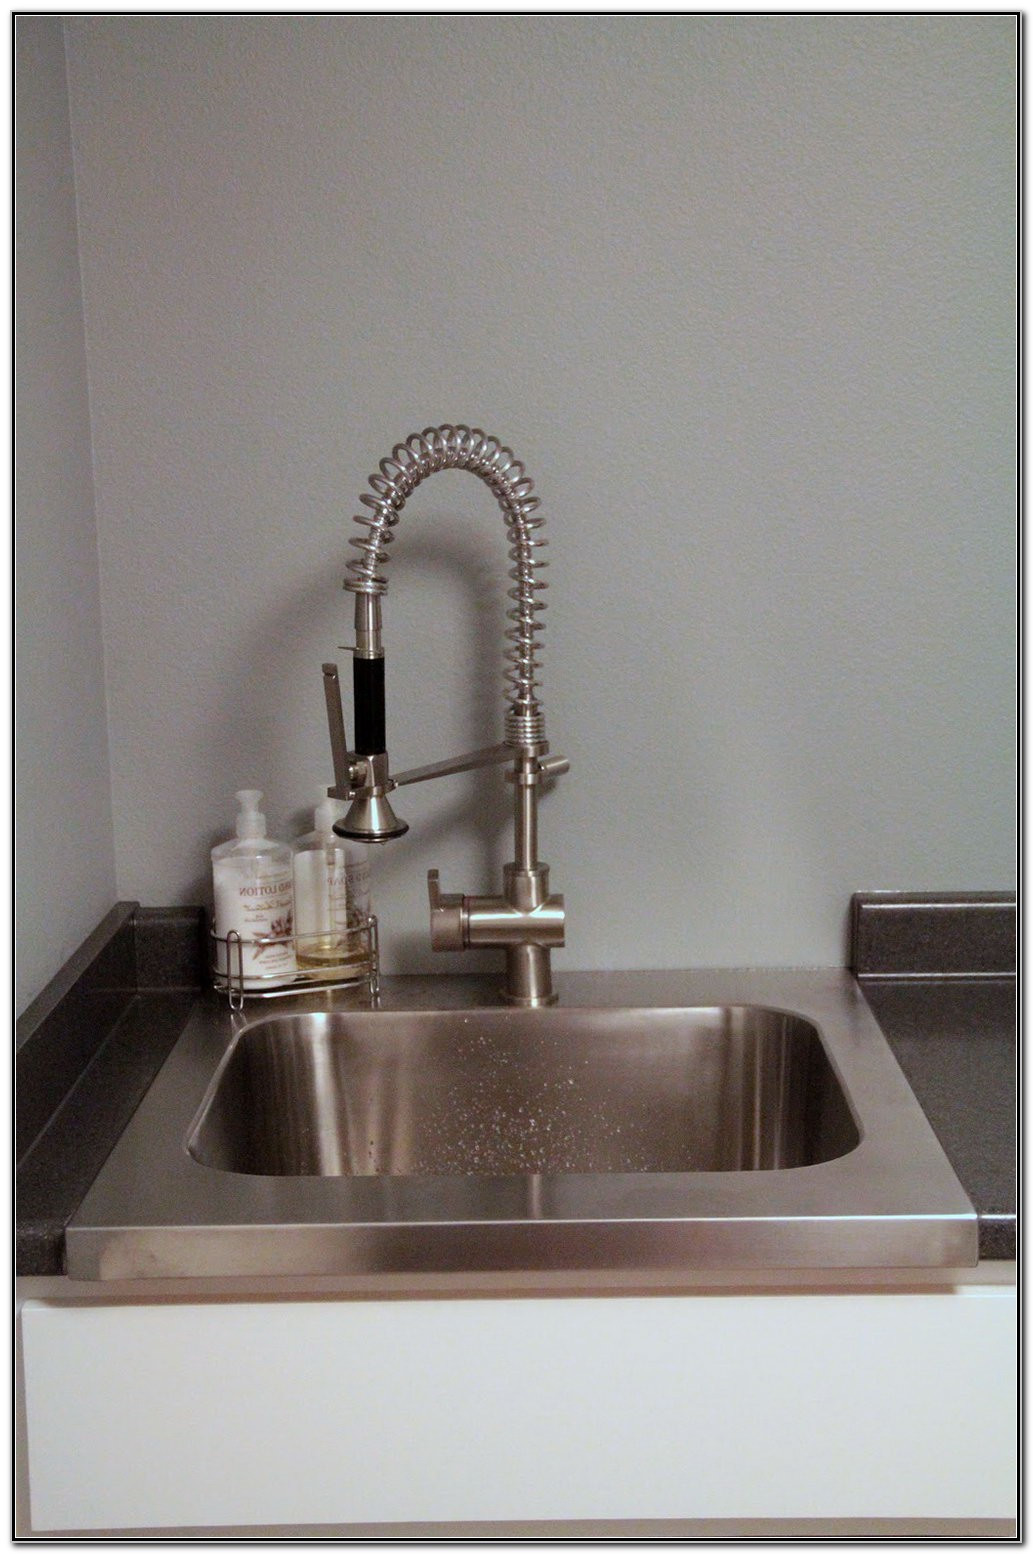 Best ideas about Laundry Room Faucets . Save or Pin Laundry Room Sink Faucet Extra Drain Line Sink And Now.